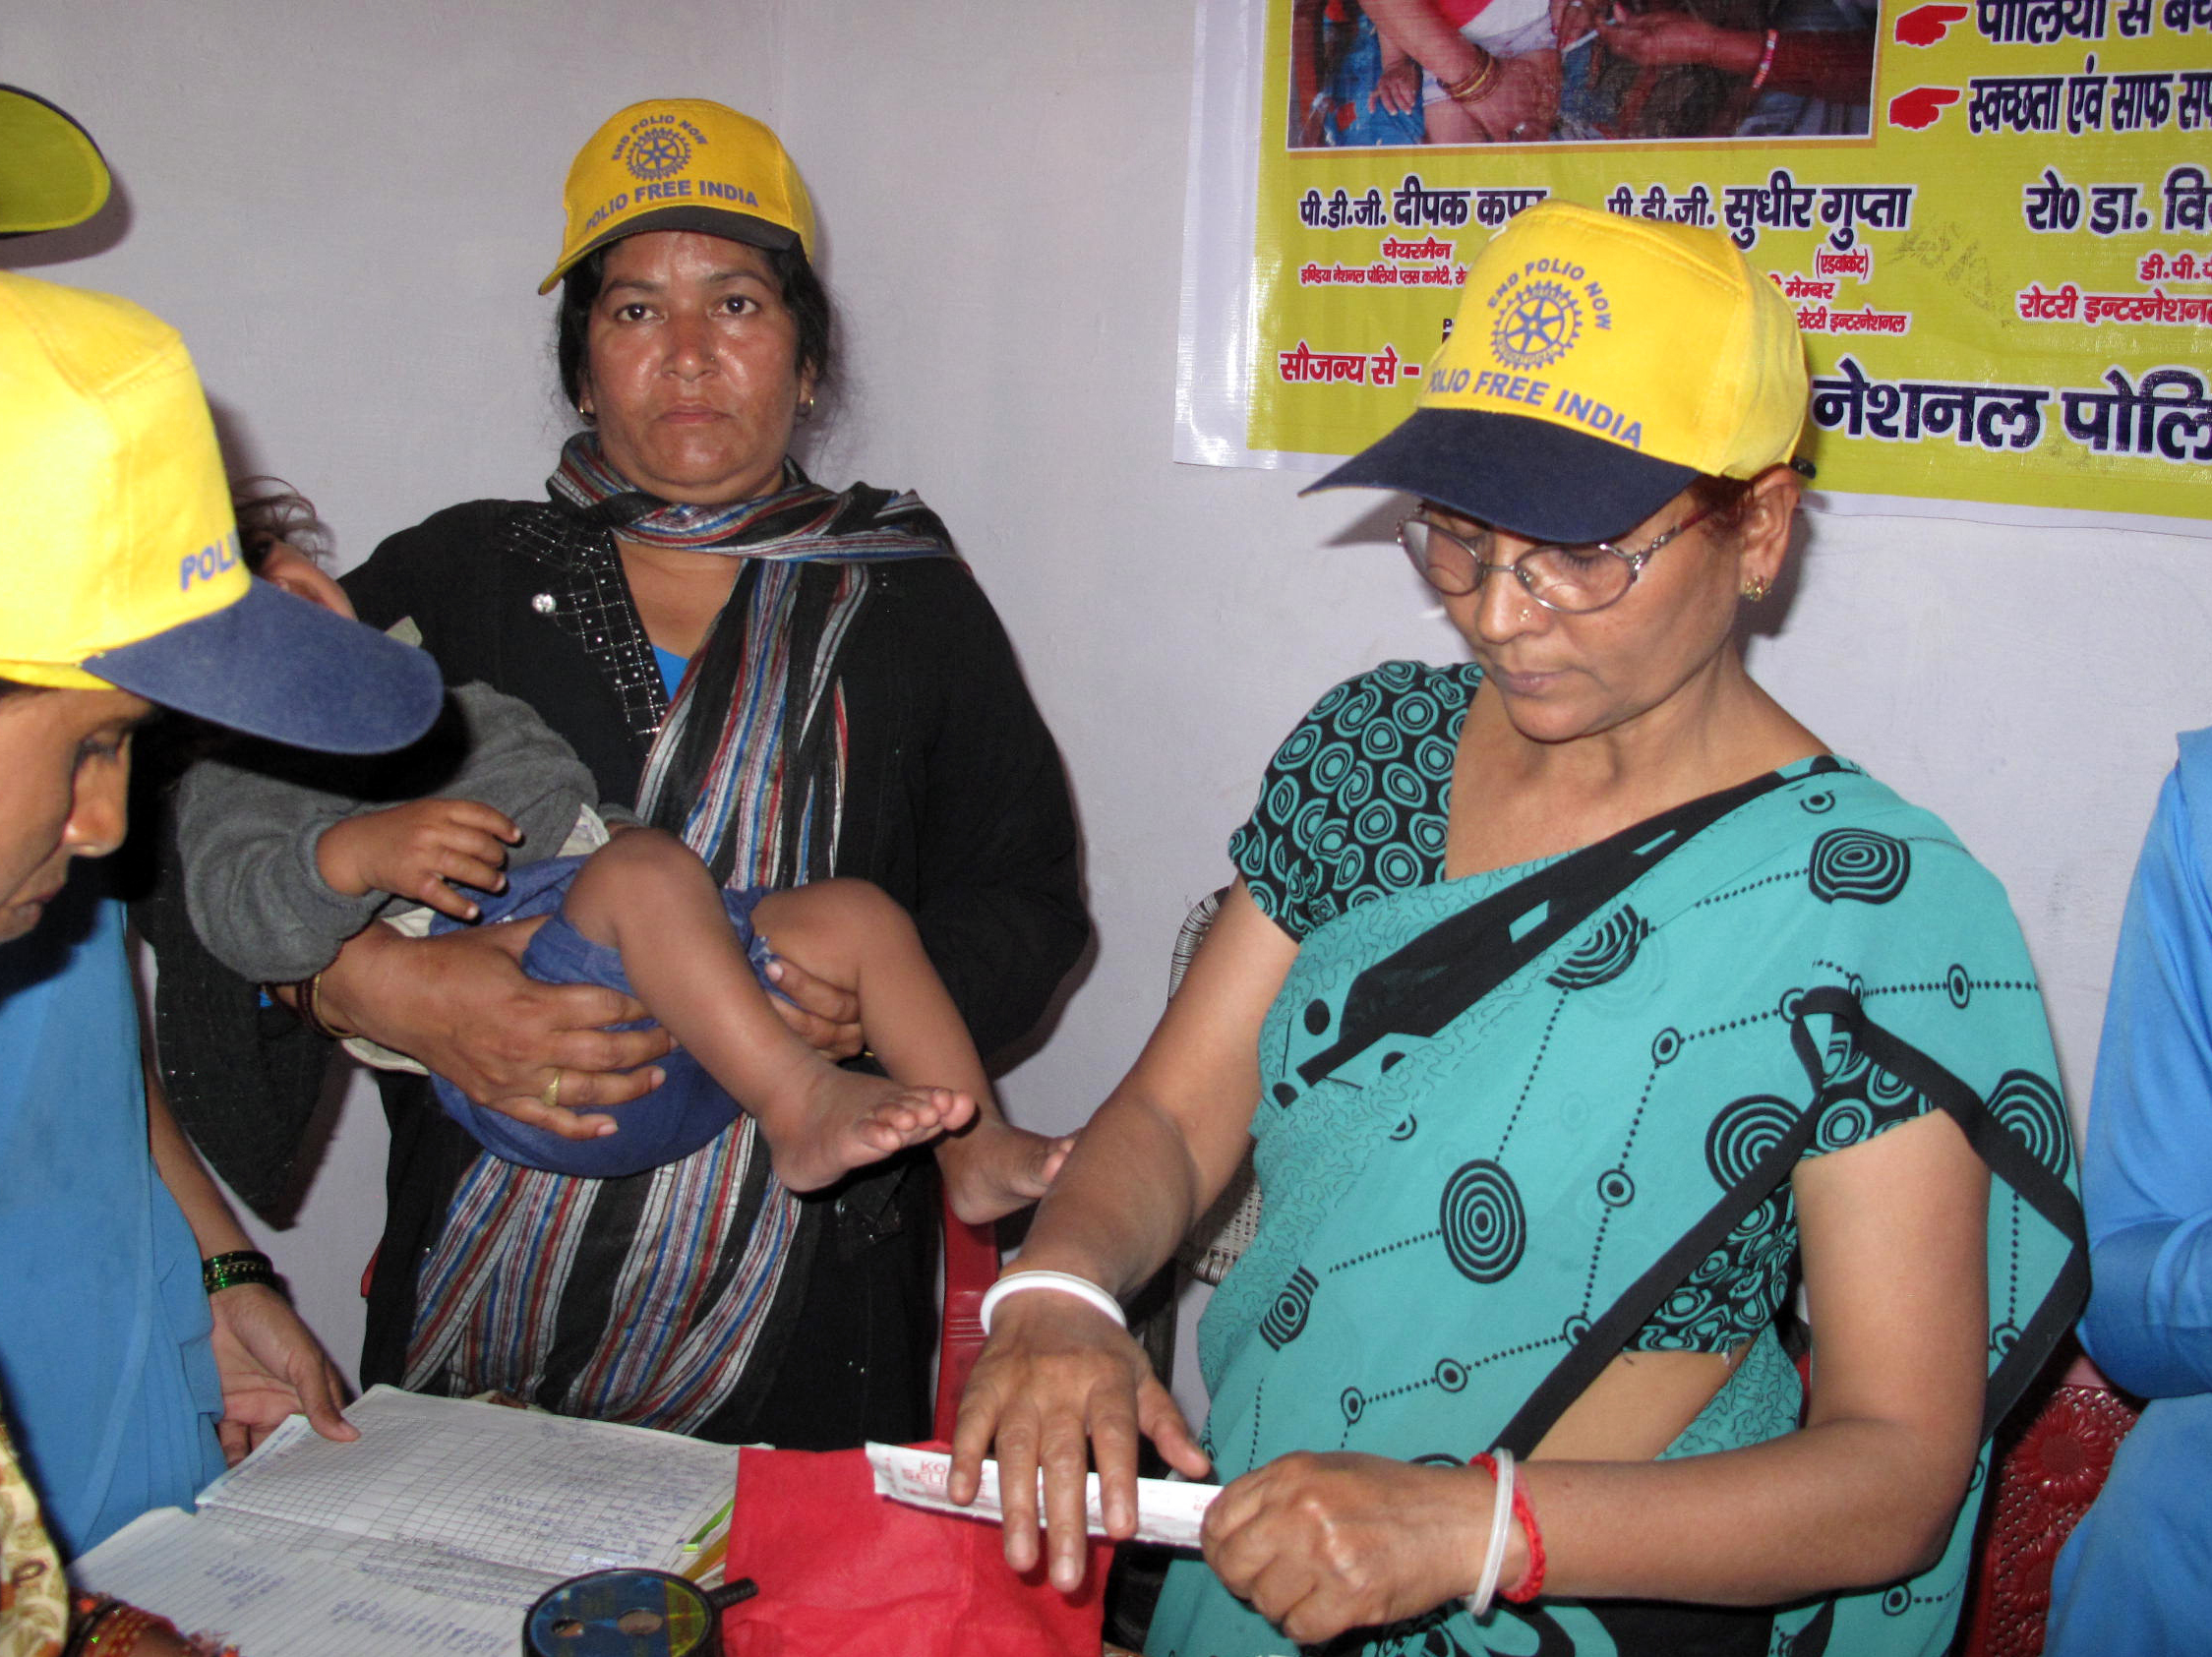 Polio vaccine campaigns are no longer just for fighting polio: Here health workers give a baby a shot against the measles in Moradabad, India.